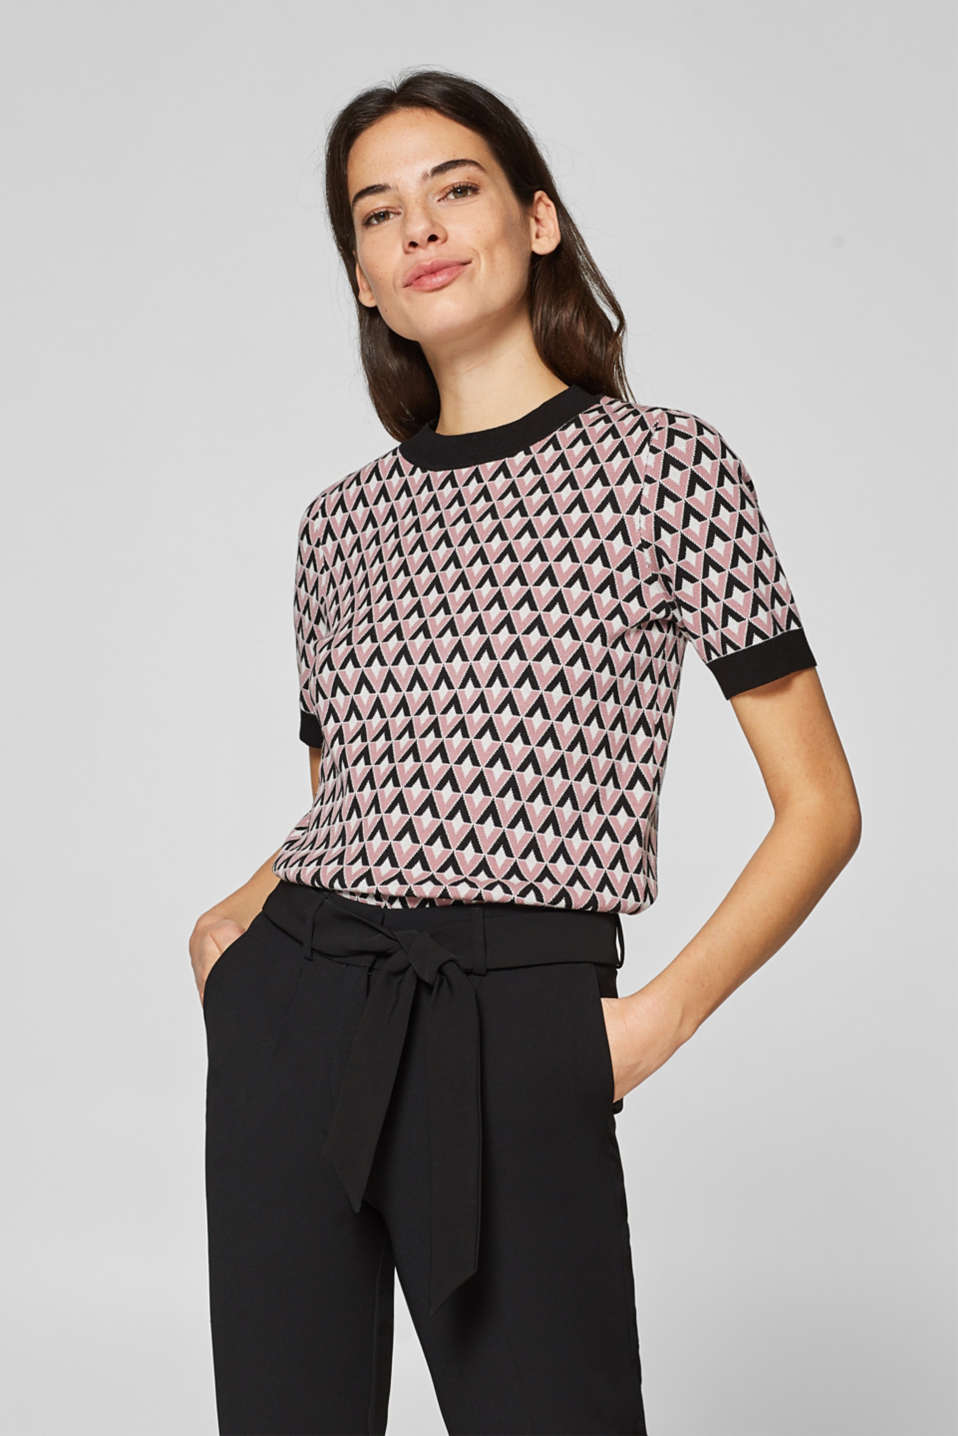 Esprit - Short sleeve jumper with a graphic pattern